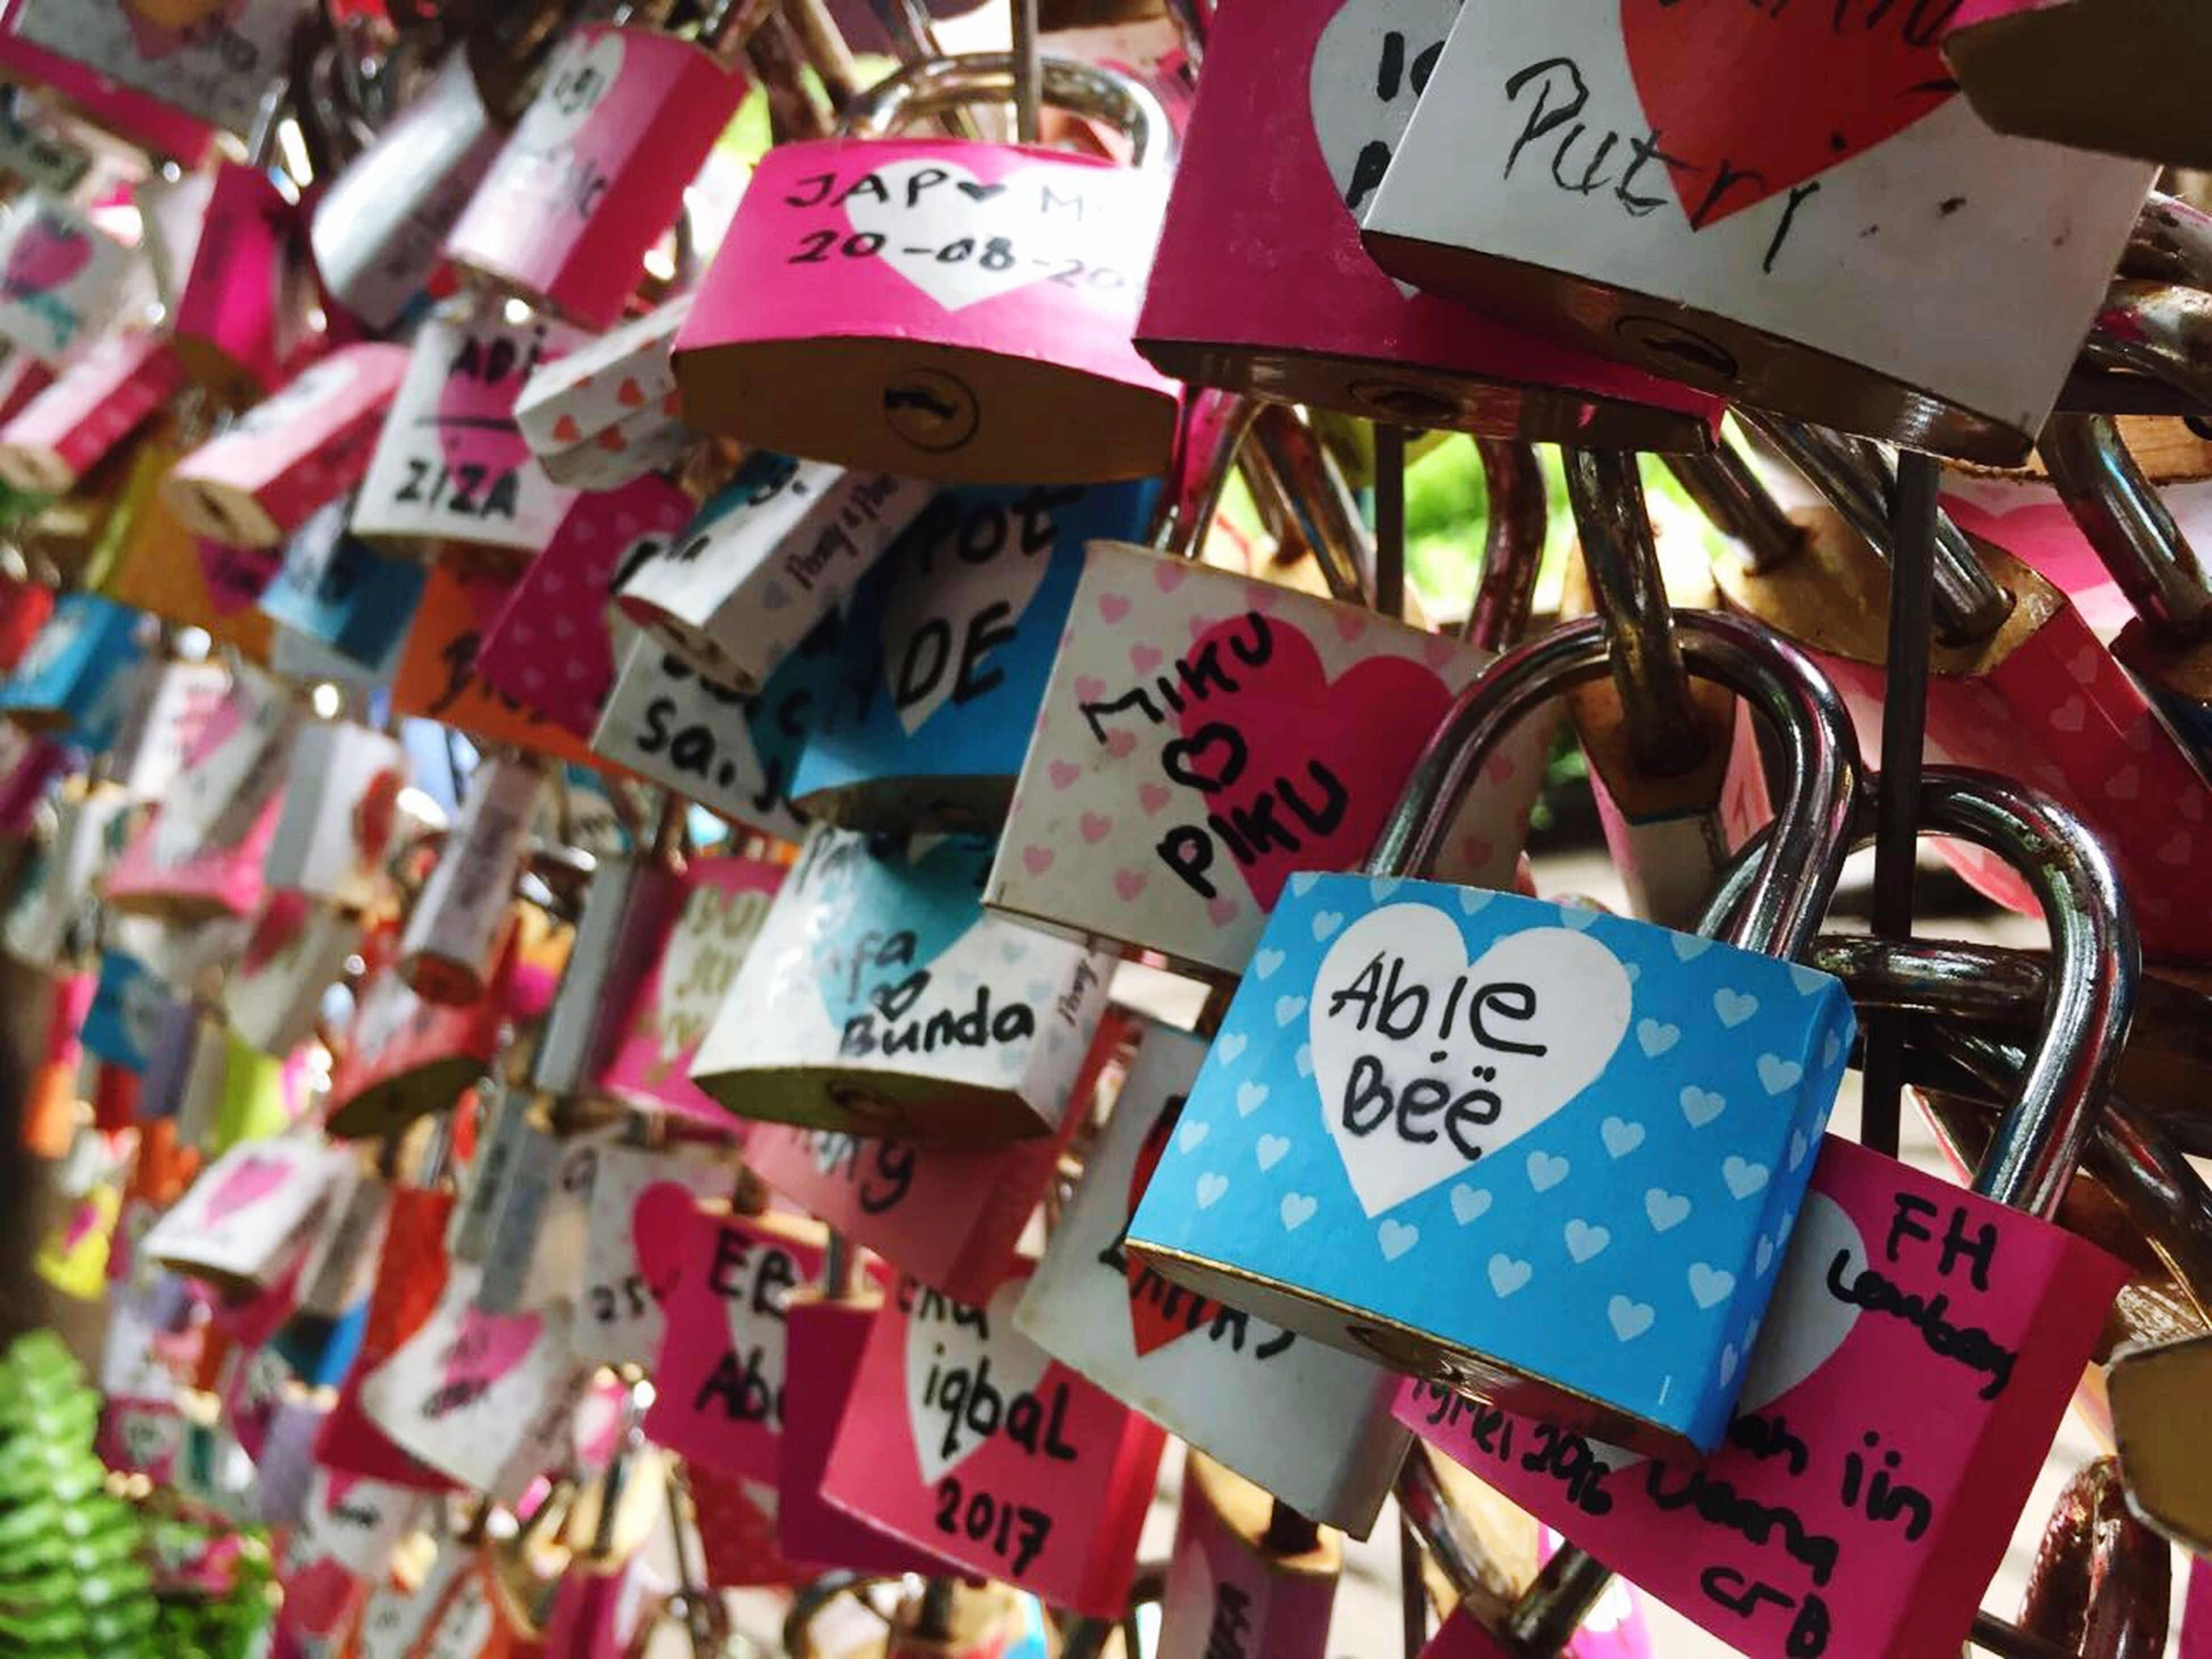 text, communication, large group of objects, padlock, hanging, abundance, variation, western script, close-up, luck, lock, multi colored, focus on foreground, choice, full frame, metal, no people, day, backgrounds, safety